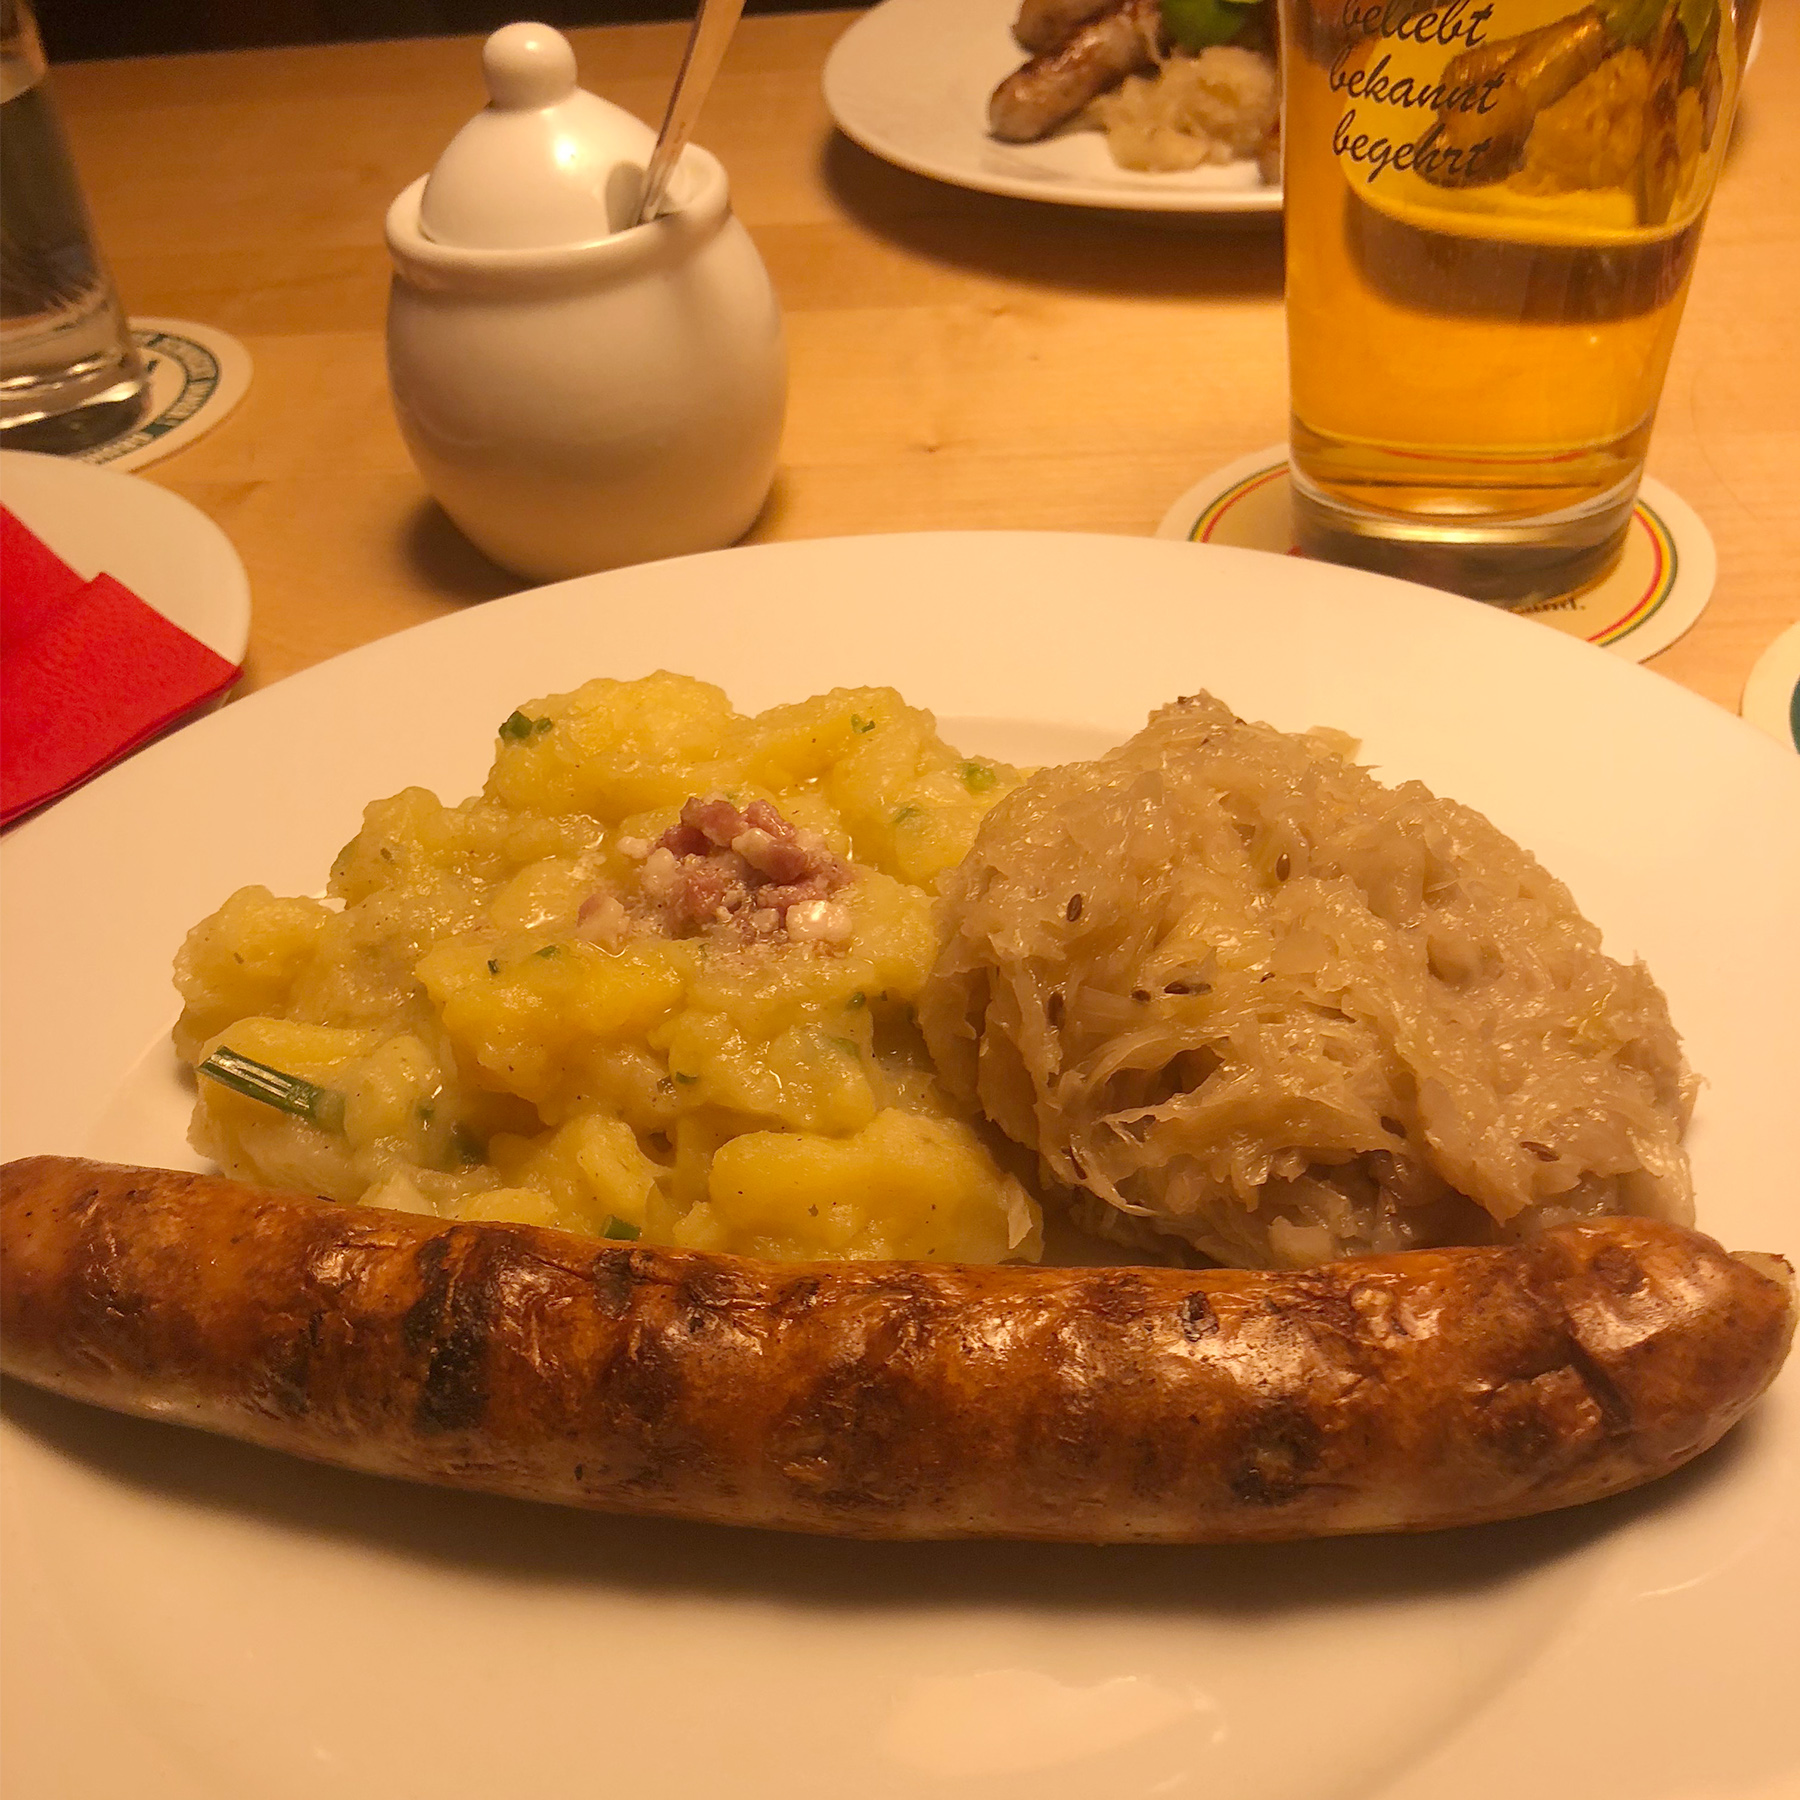 obigatory delicious bratwurst and sauerkraut